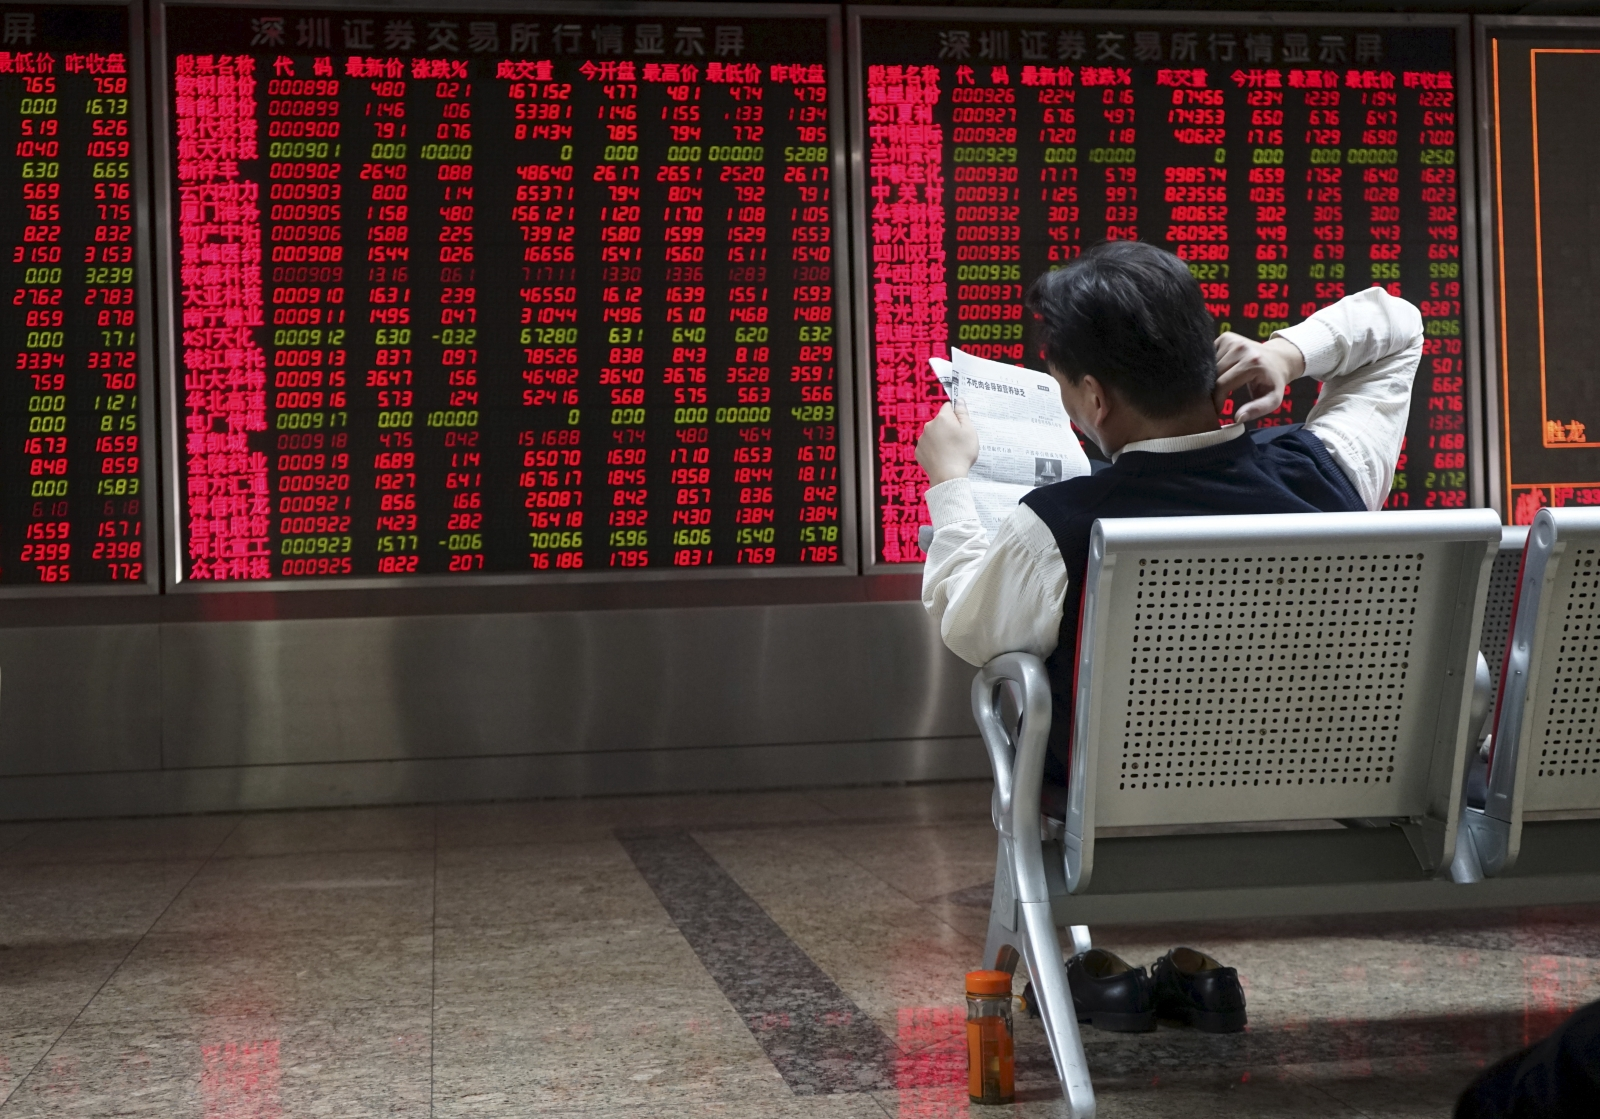 Asian markets: Shanghai Composite trades higher despite JPMorgan and Markit revealing weak global manufacturing data